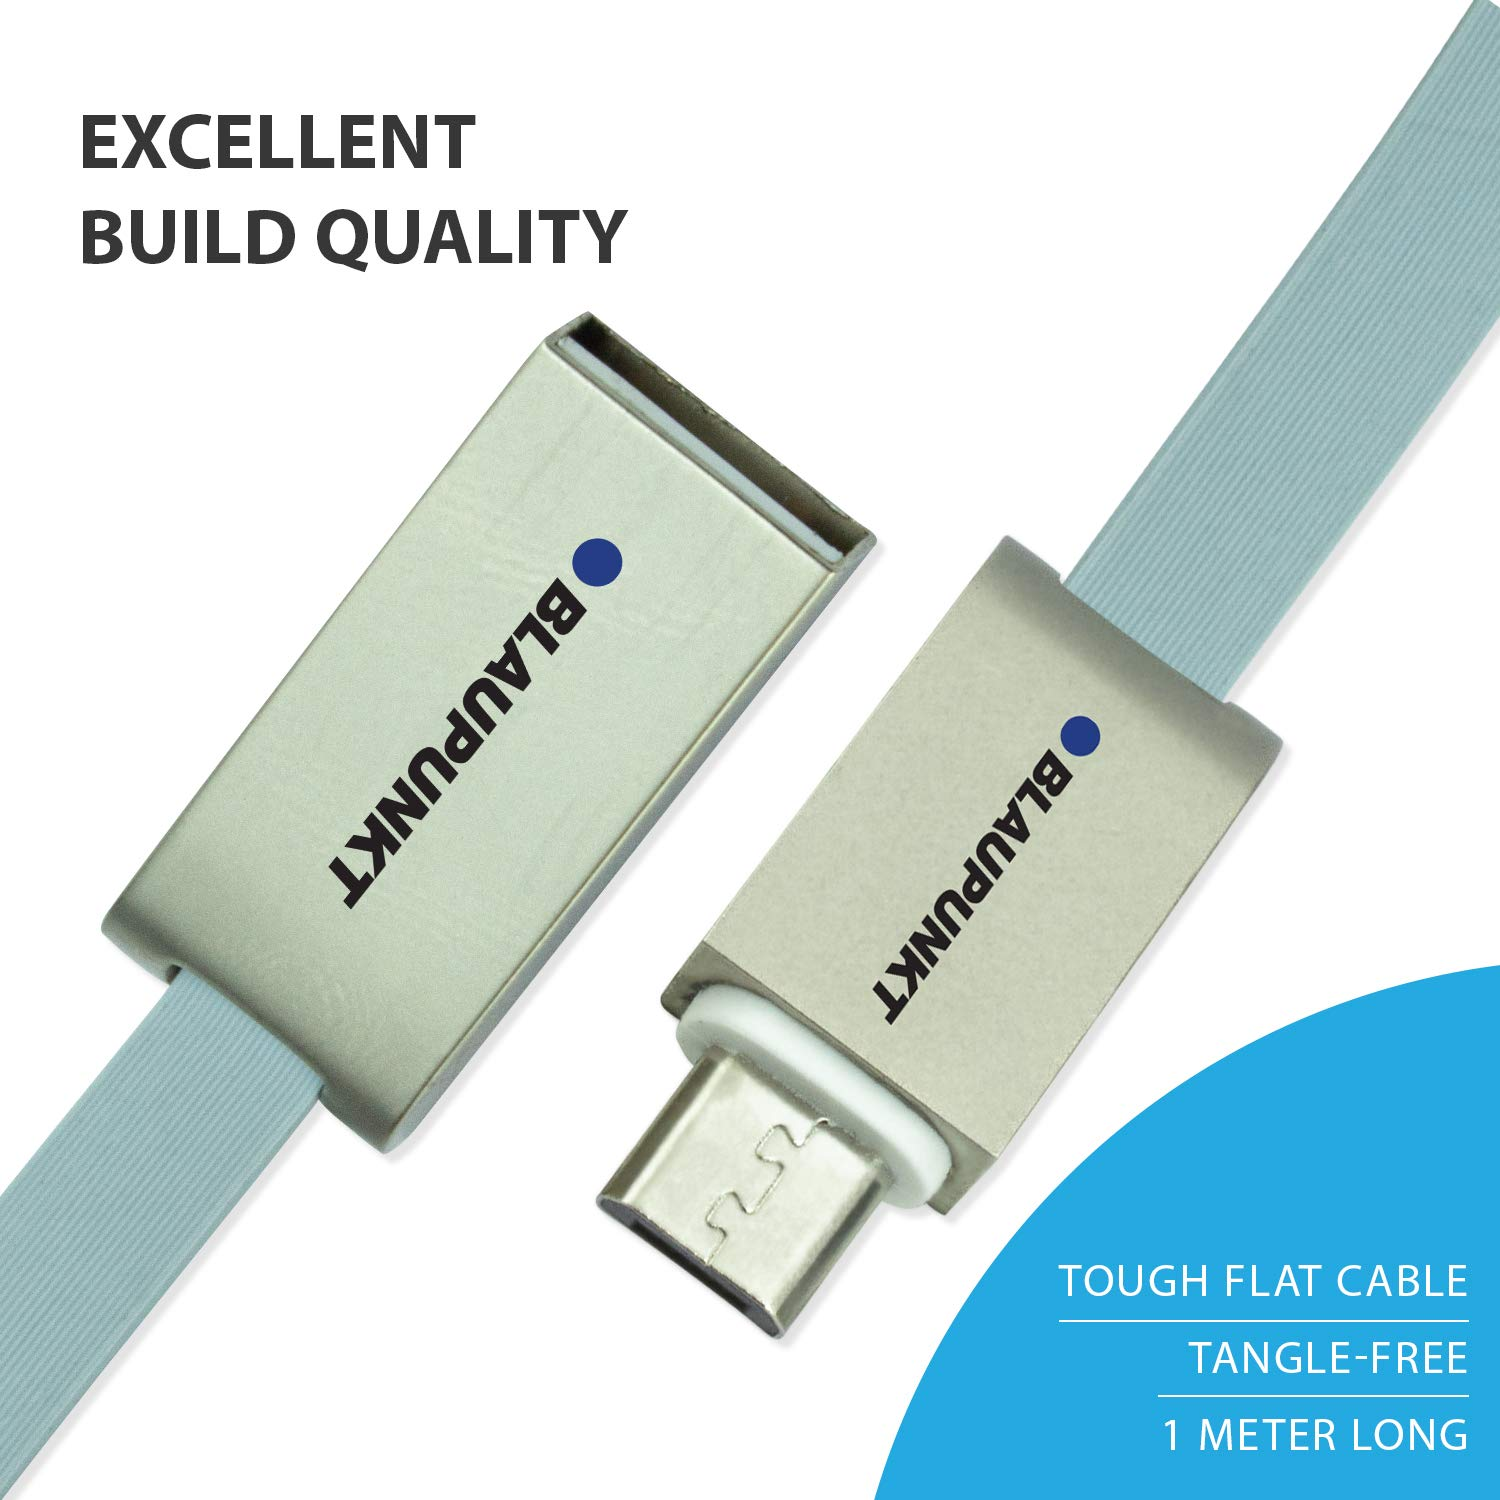 Blaupunkt Highly Durable Micro to USB 2.0 Flat Cable with High Speed Charging and Quick Data Sync for All USB Powered Devices (Grey)